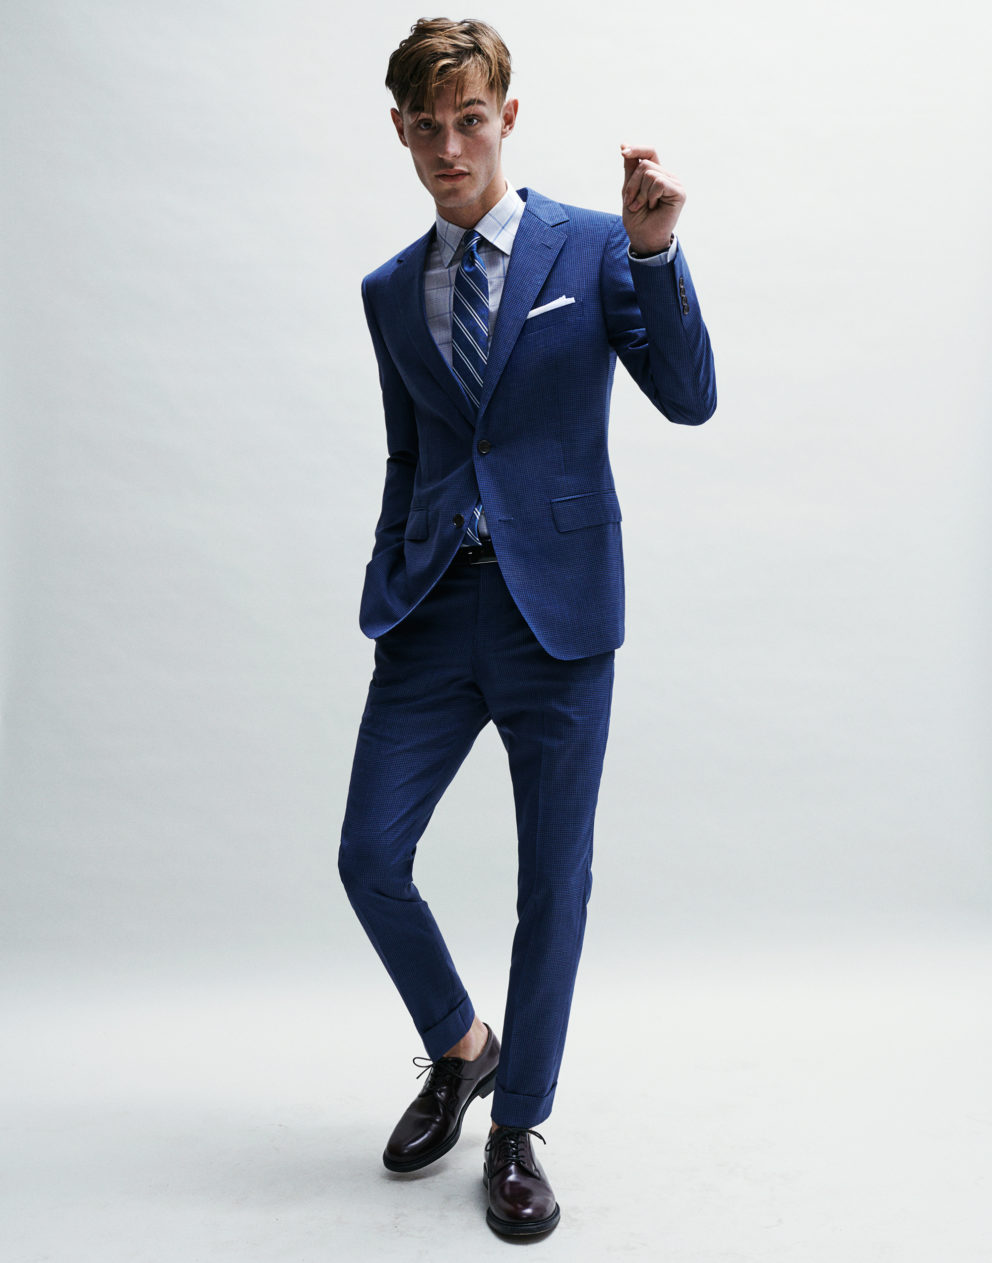 181212 0060 Bonobos Suiting Kit Butler 059 Christian Hogstedt